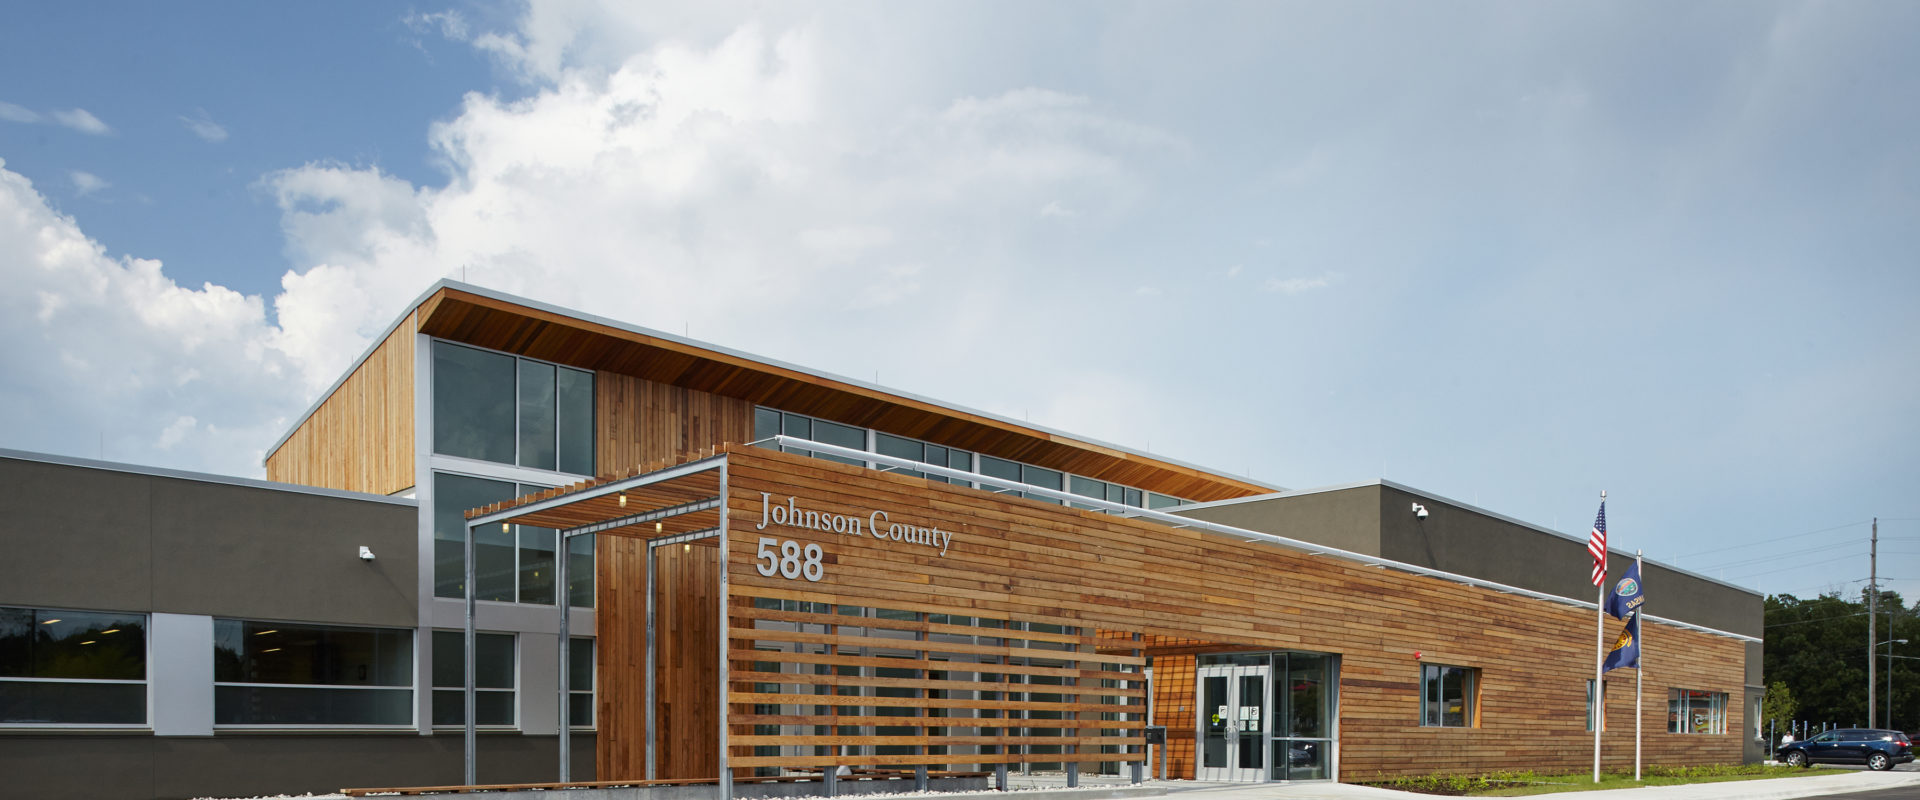 Image from:  https://www.archdaily.com/599619/johnson-county-justice-annex-el-dorado